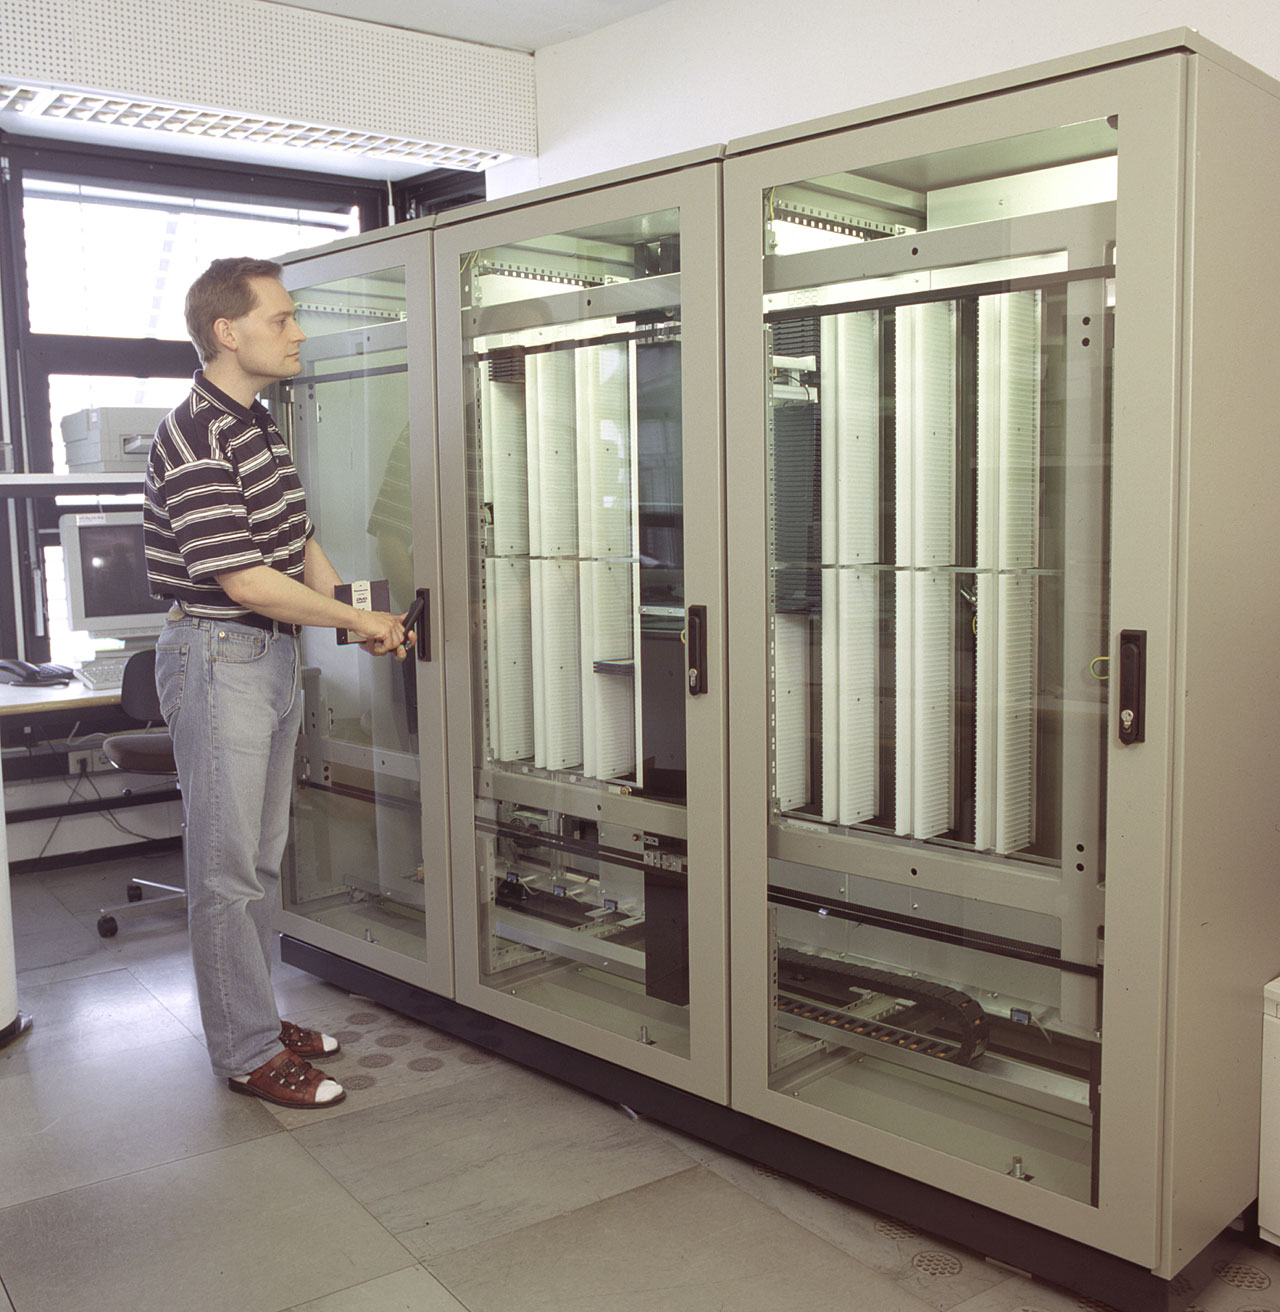 First DVD Storage Robot for the VLT Data Archive